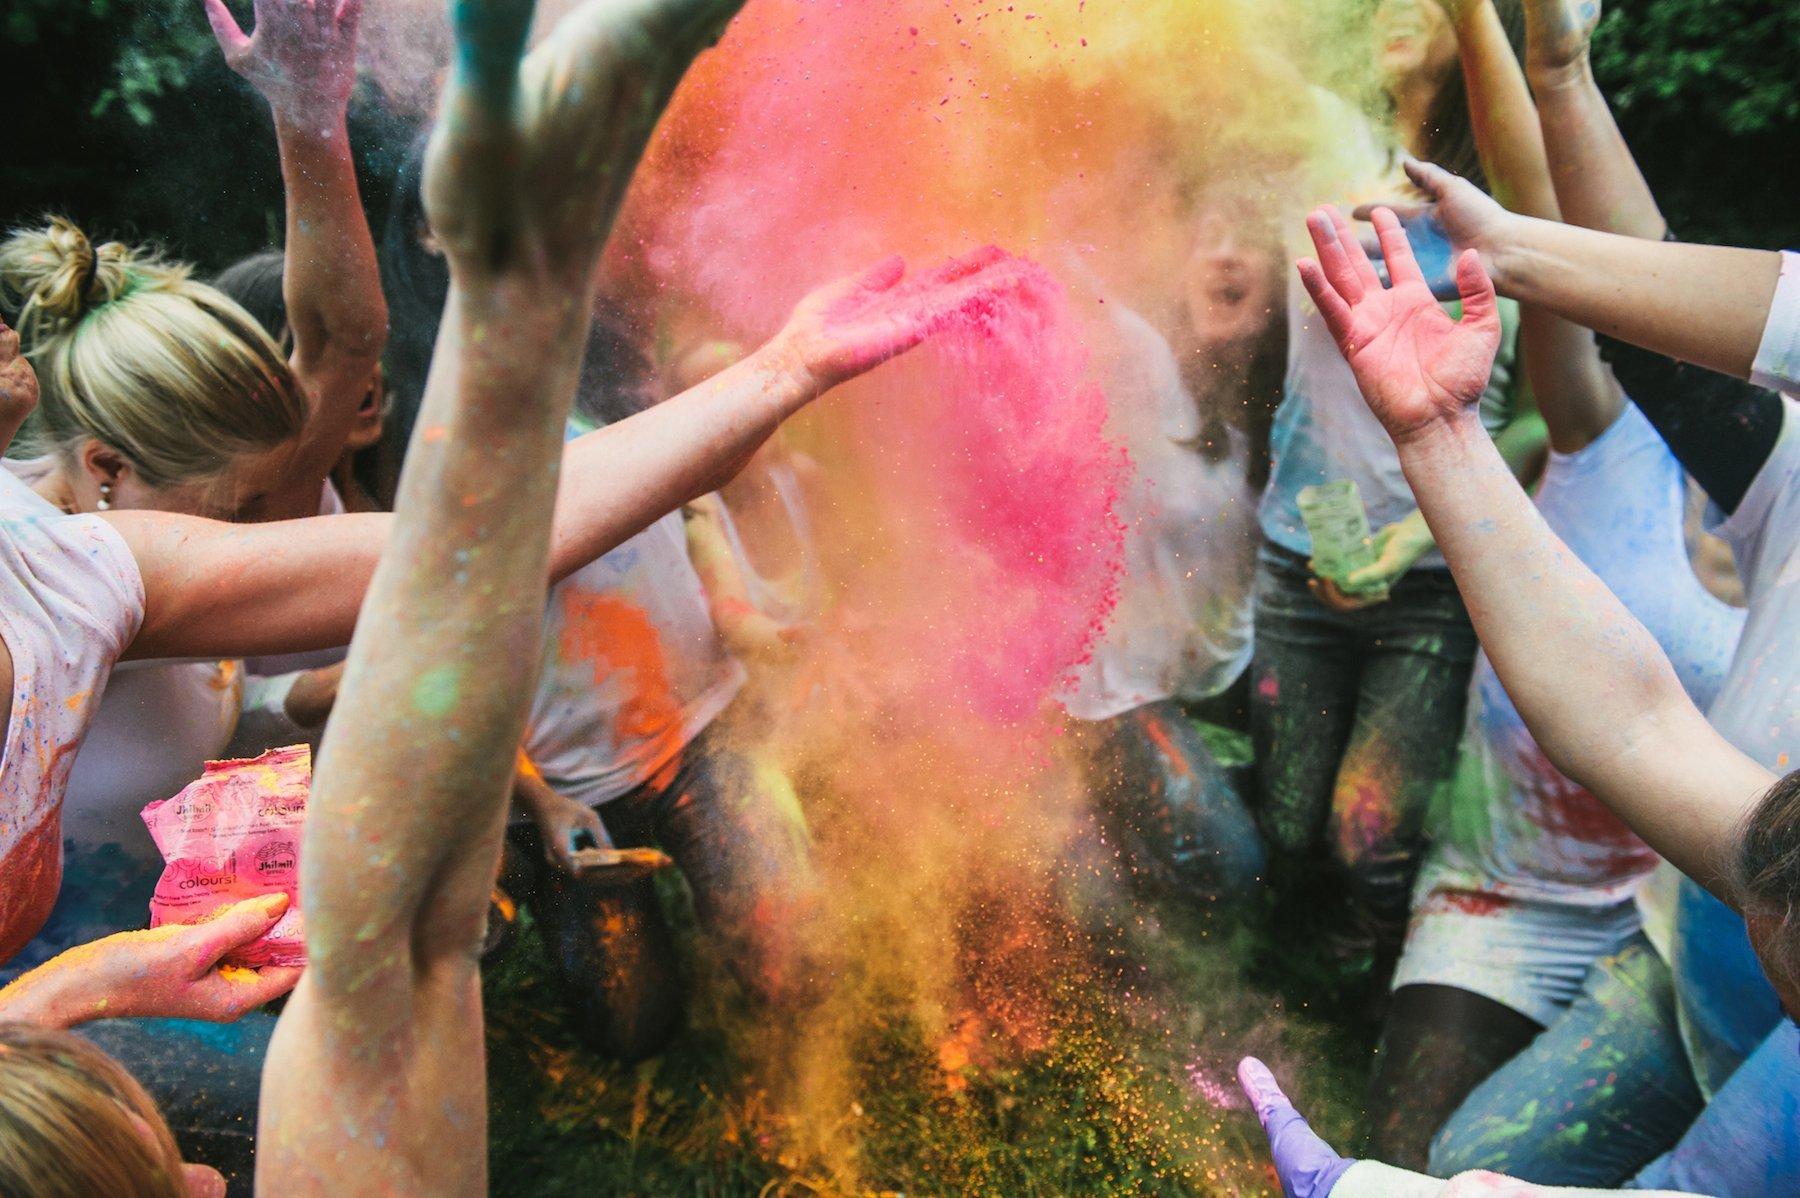 junggsellenabschied holi farbe